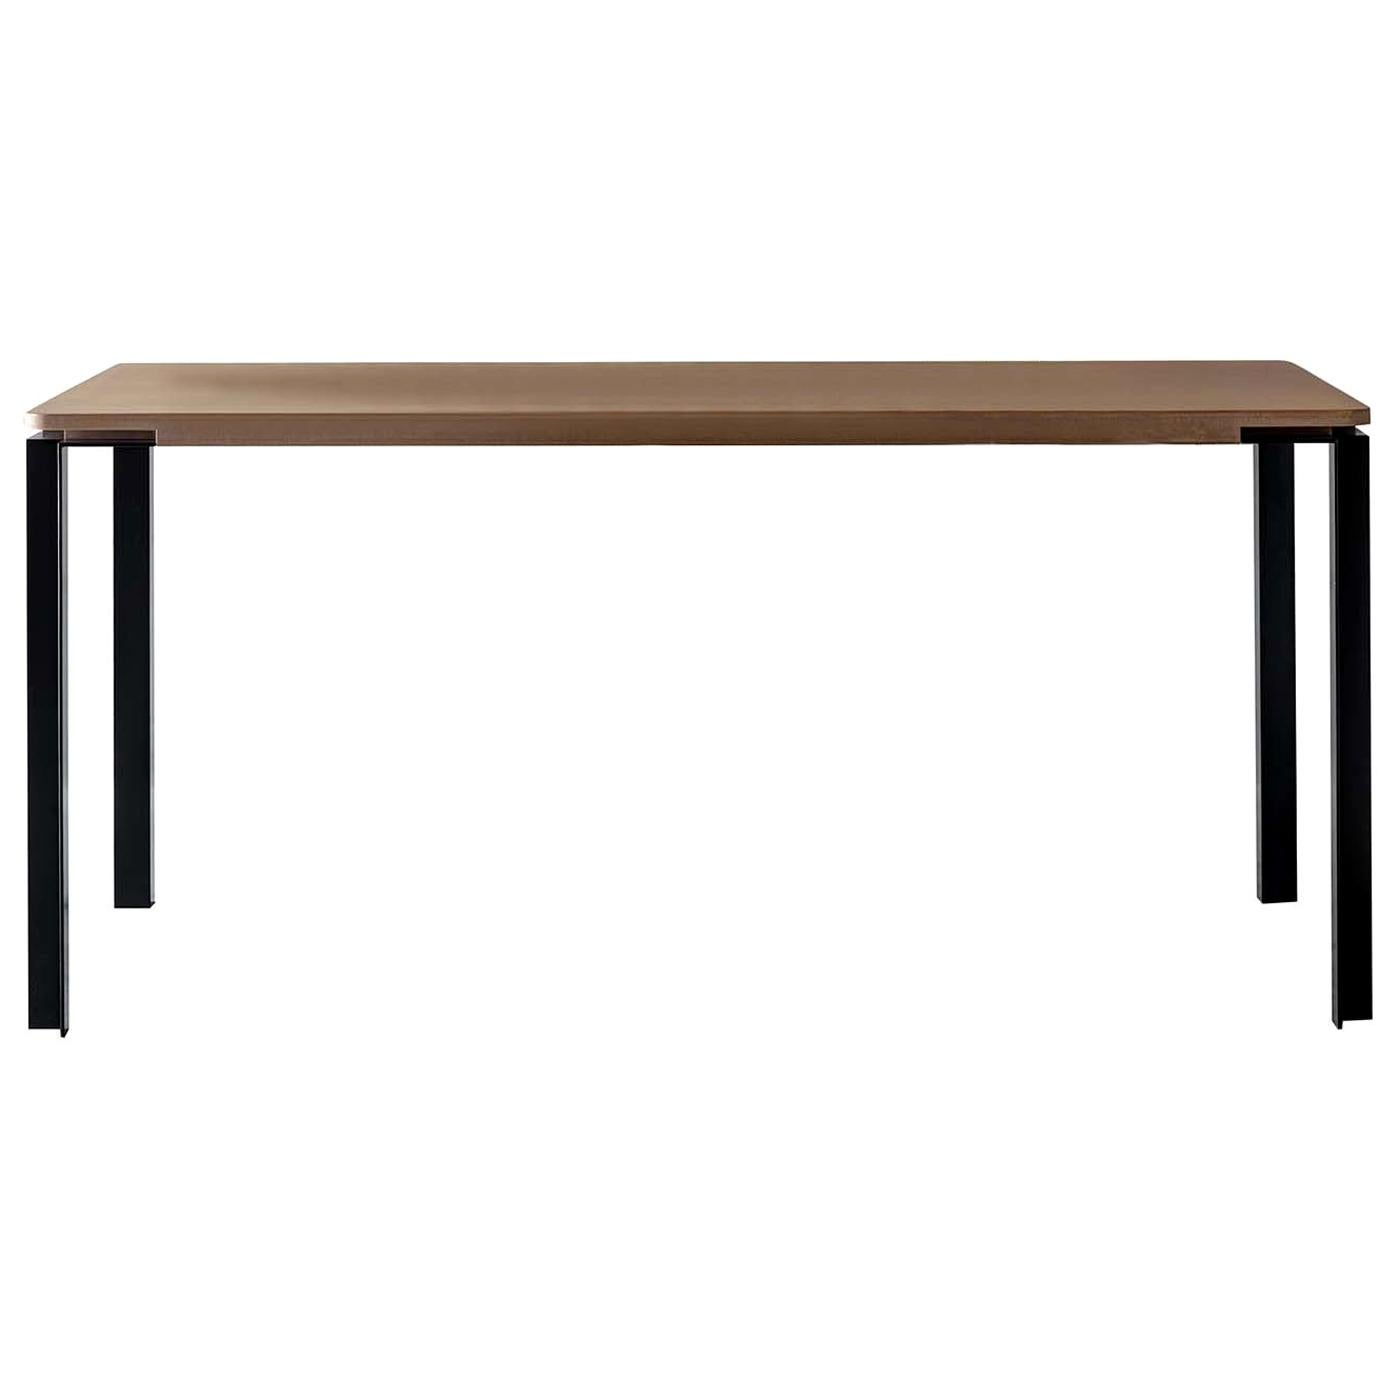 Tal Table by Fioroni